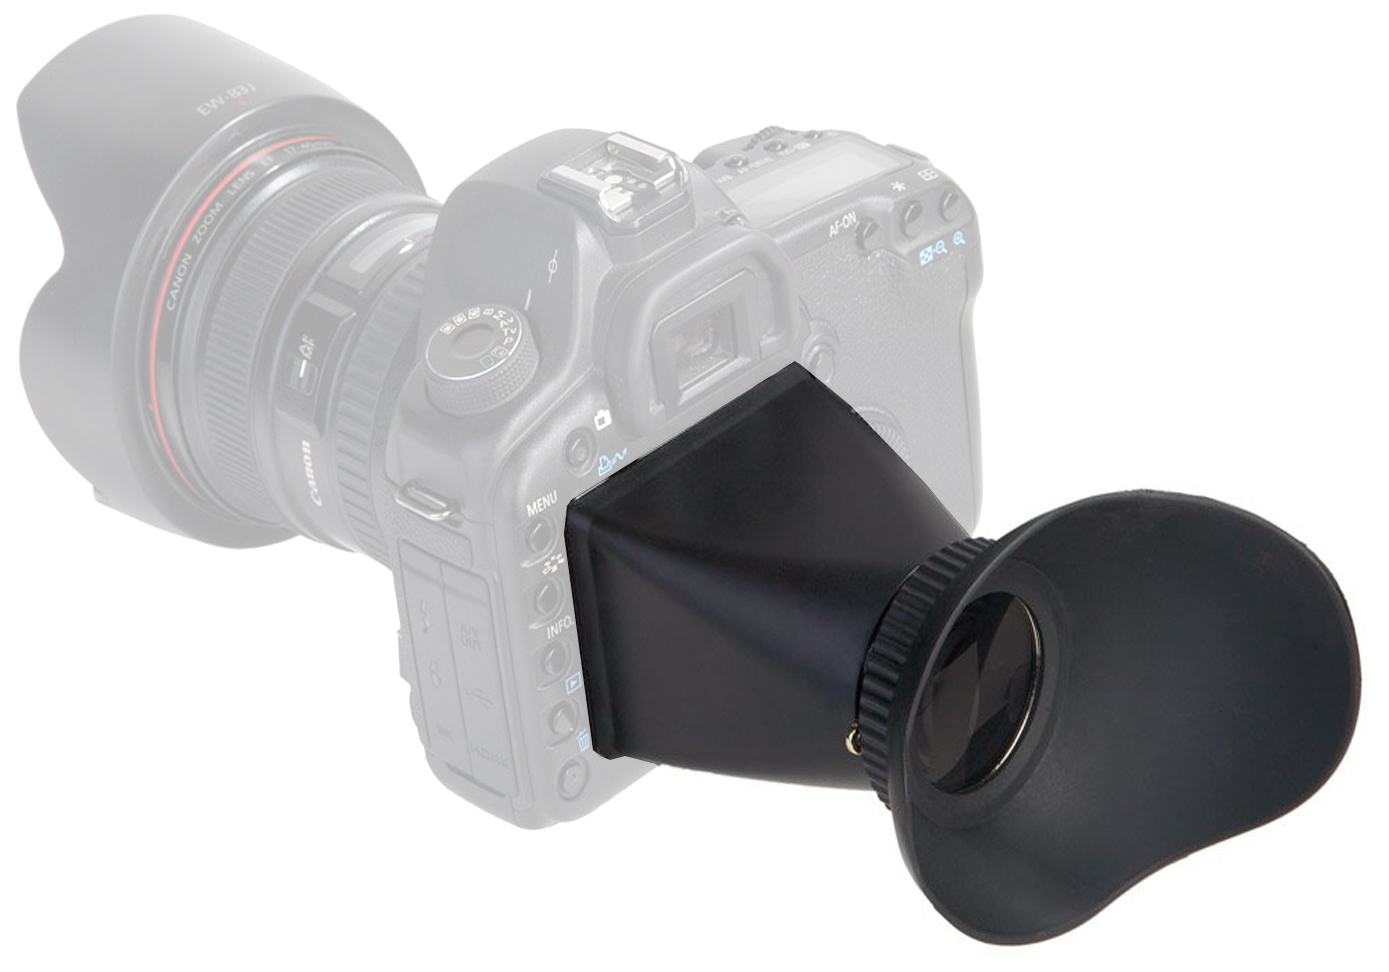 LCD VIEWFINDER / V-Finder V2 / LCDVF for Canon 5D MARK III / Canon 550D